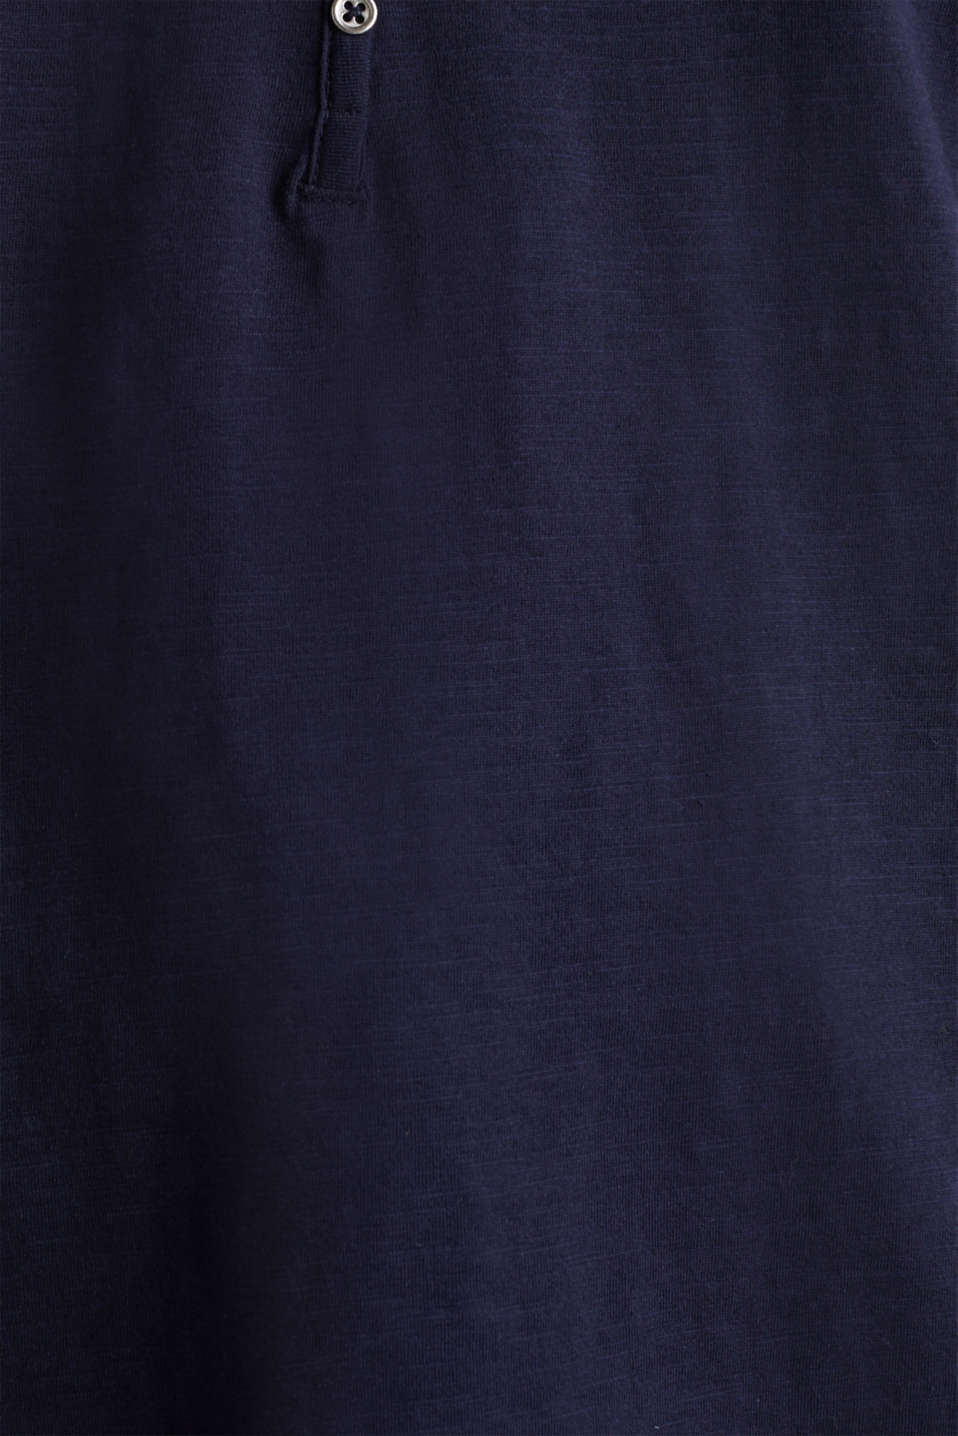 CURVY long sleeve top, organic cotton, NAVY, detail image number 4